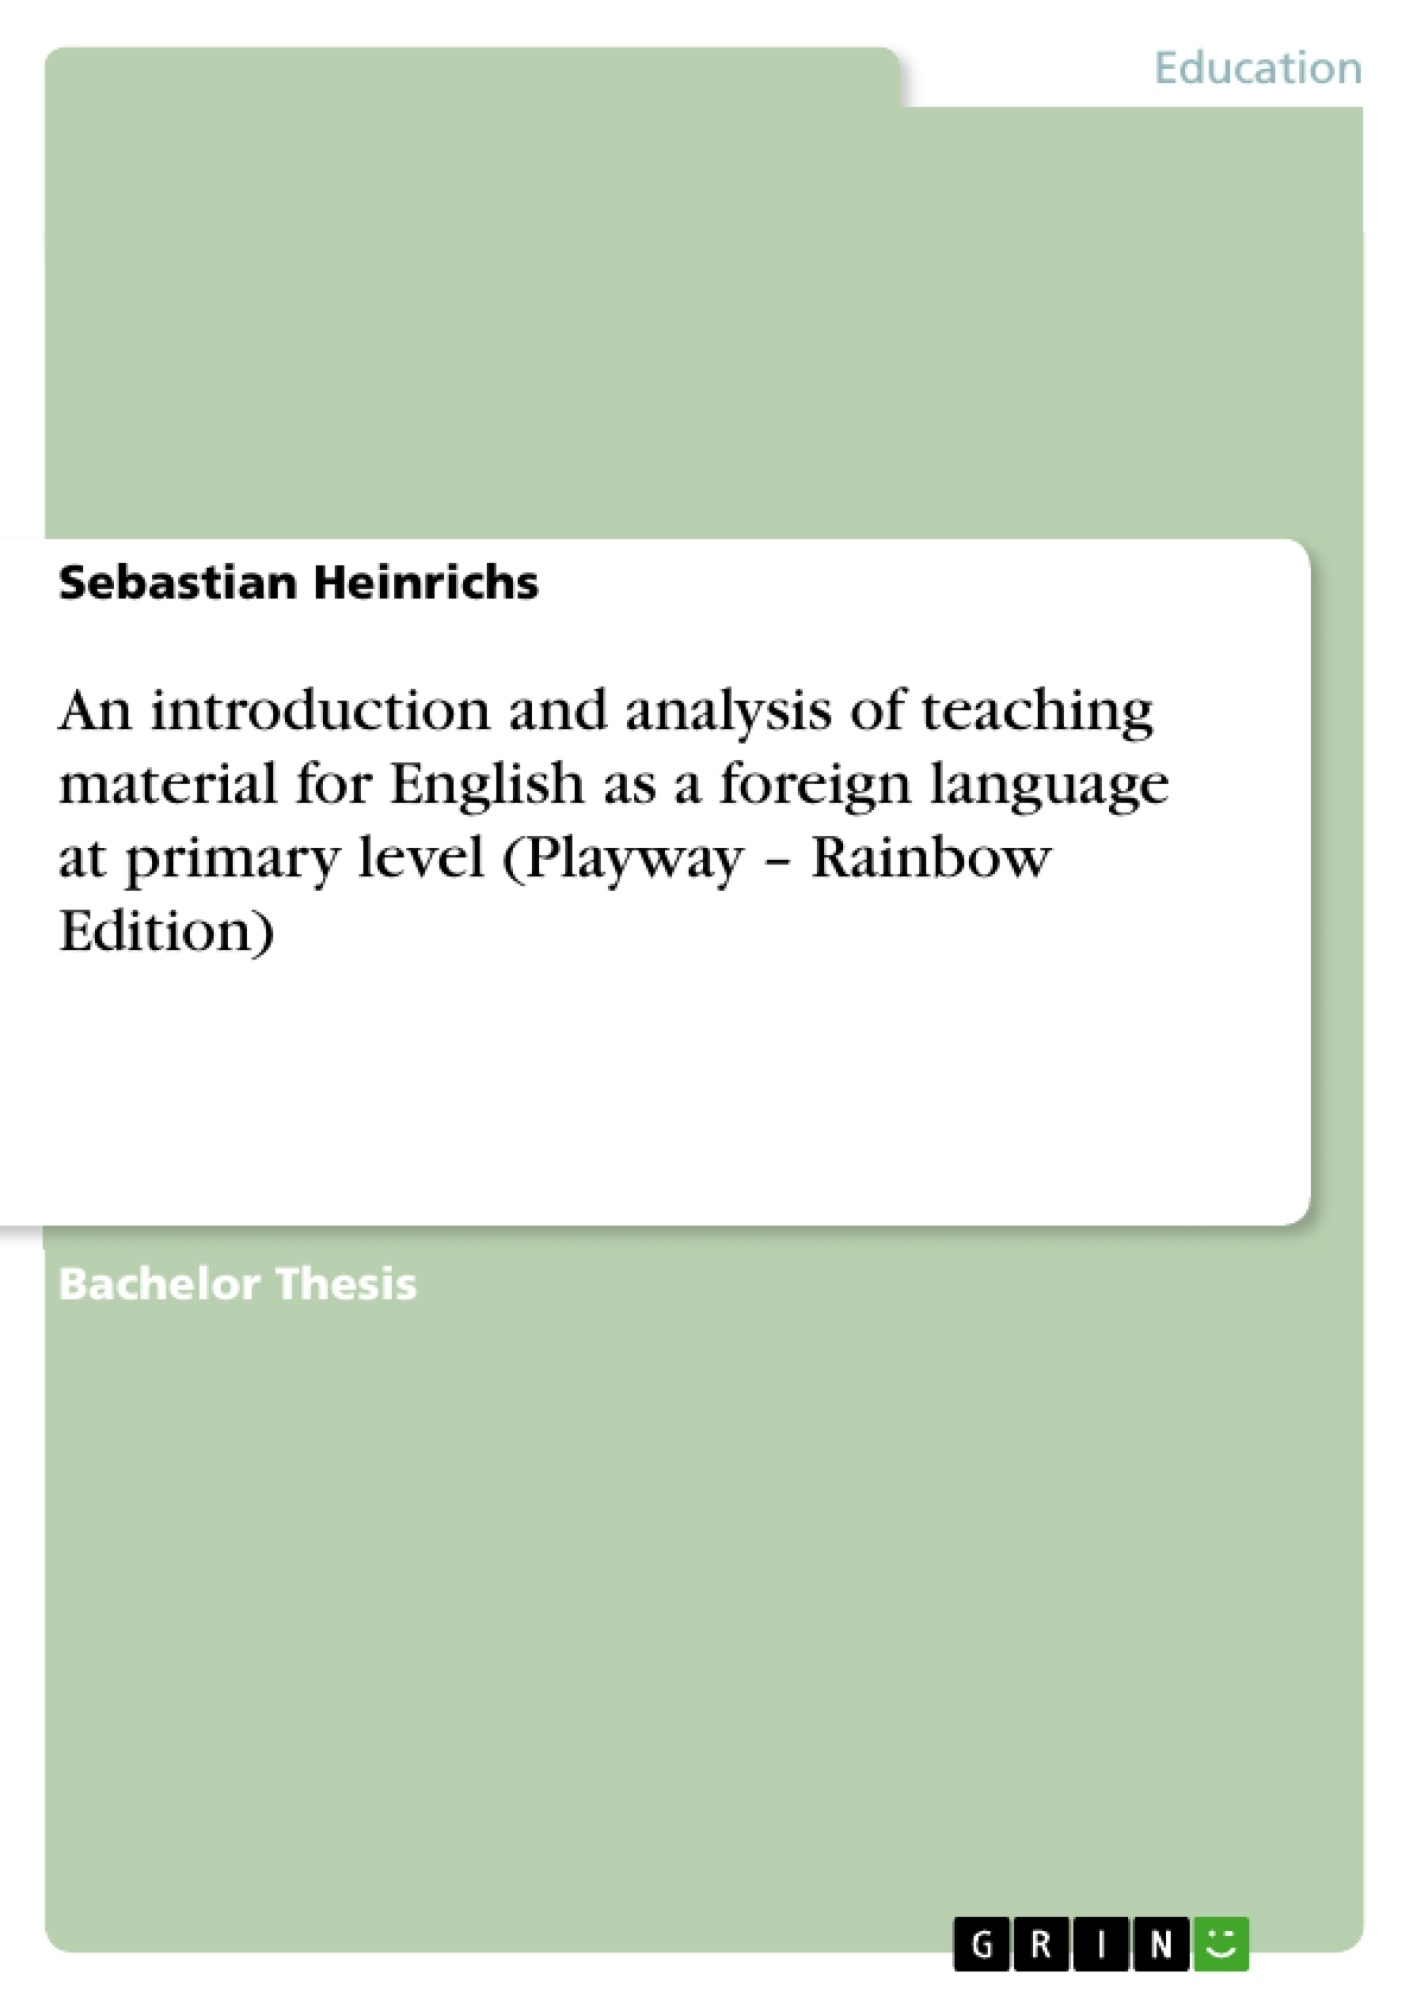 Title: An introduction and analysis of teaching material for English as a foreign language at primary level (Playway – Rainbow Edition)